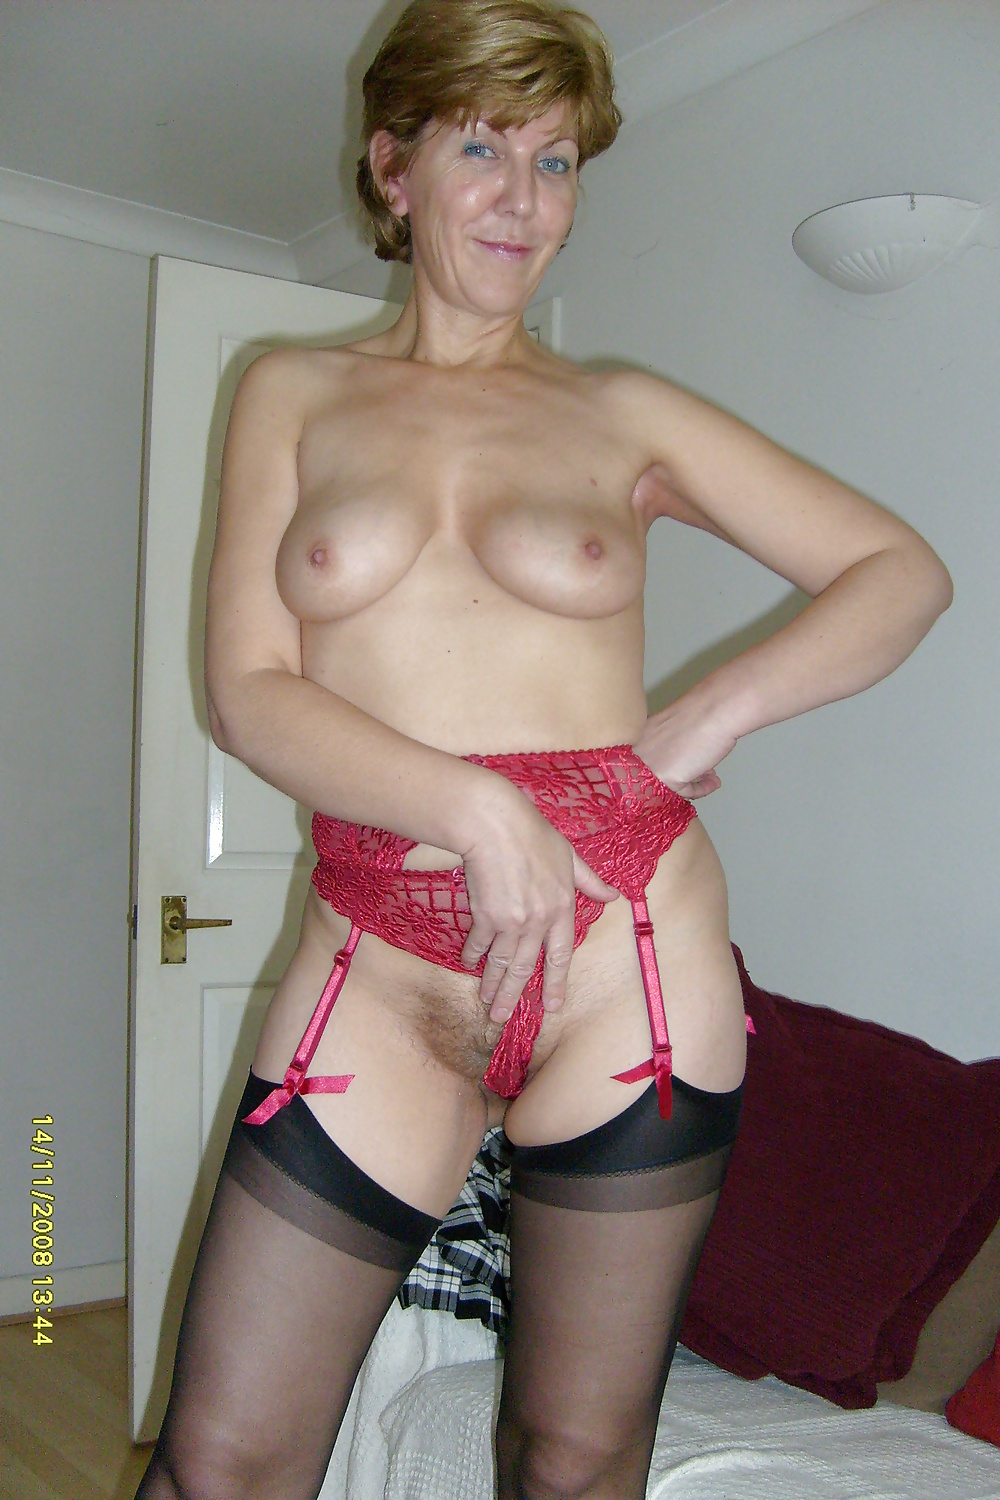 Amateur Mature Wives - Homemade Hairy Wife - Panties -7831